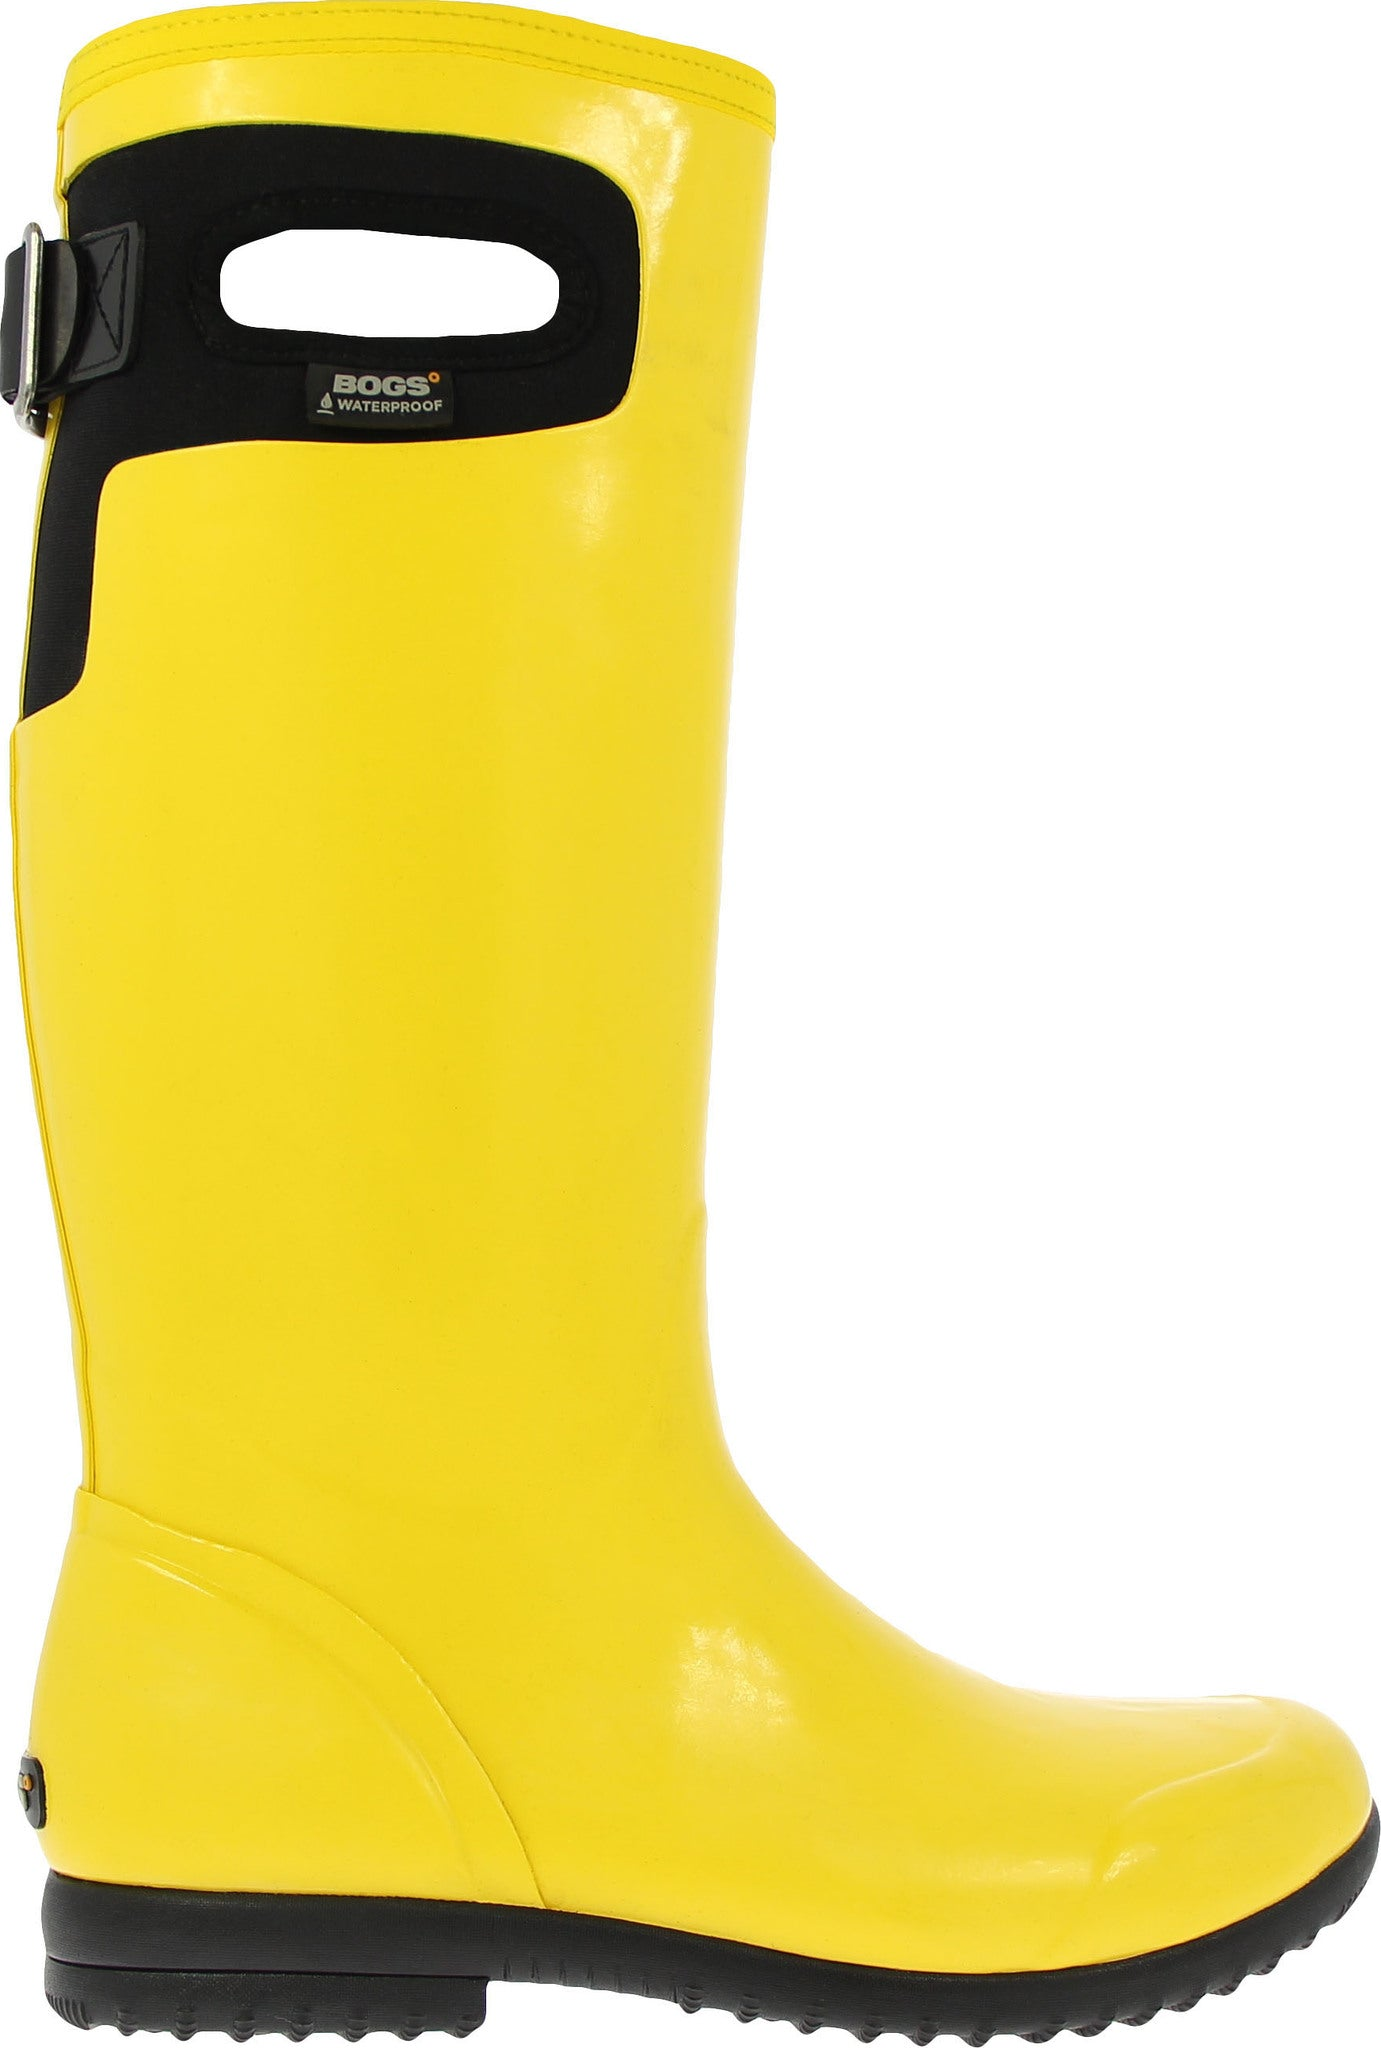 Bogs Tacoma Tall Insulated Boots